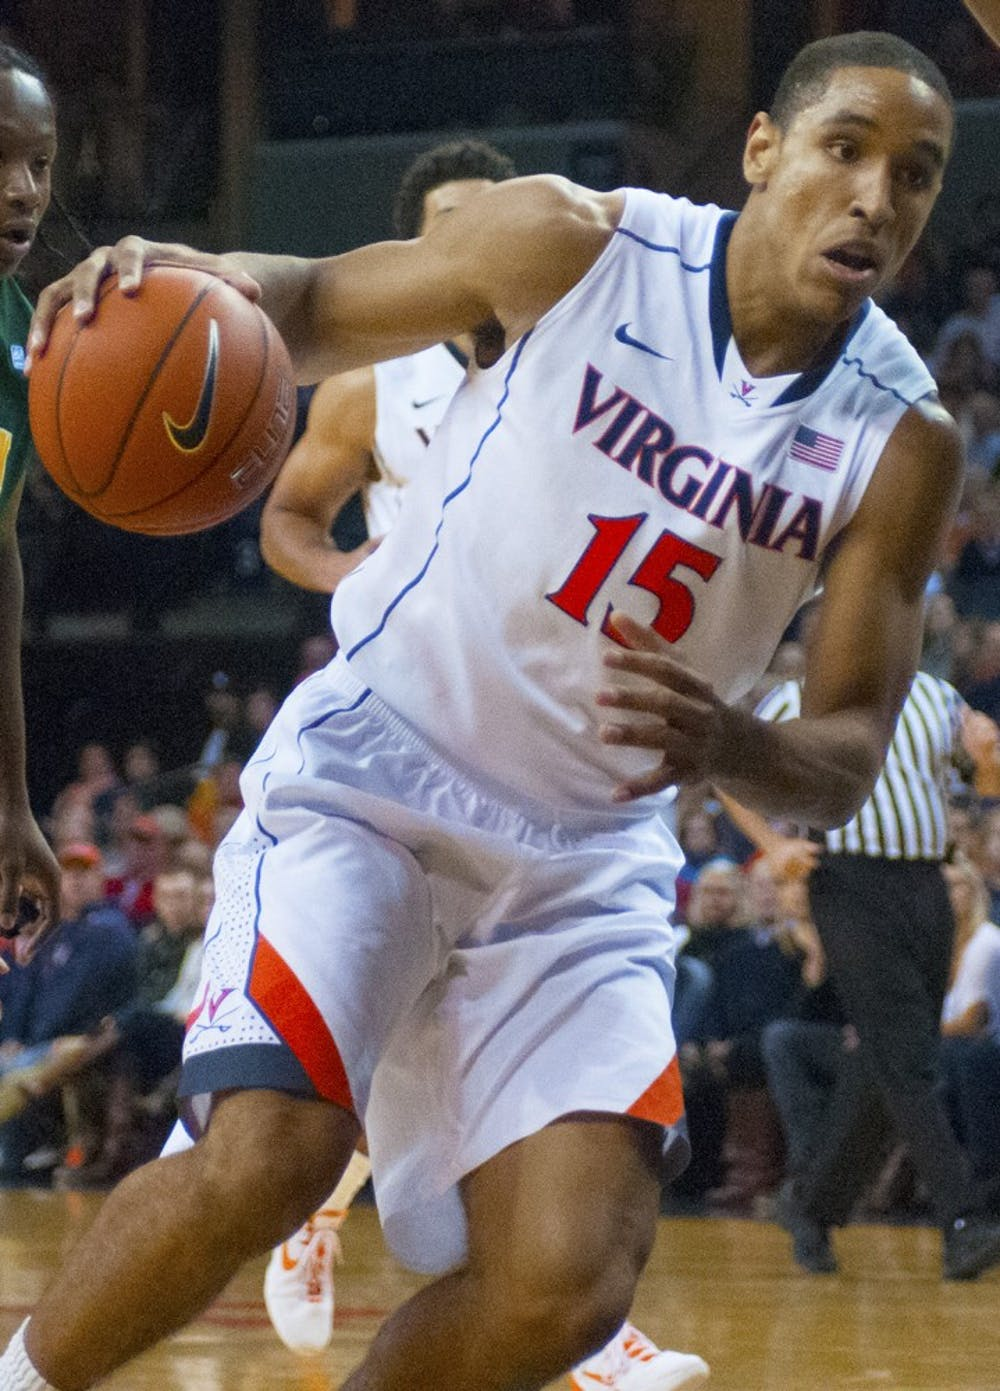 <p>Junior guard Malcolm Brogdon knocked down two 3-pointers, grabbed three rebounds and dished out three assists in 26 minutes Sunday night against Norfolk State.</p>